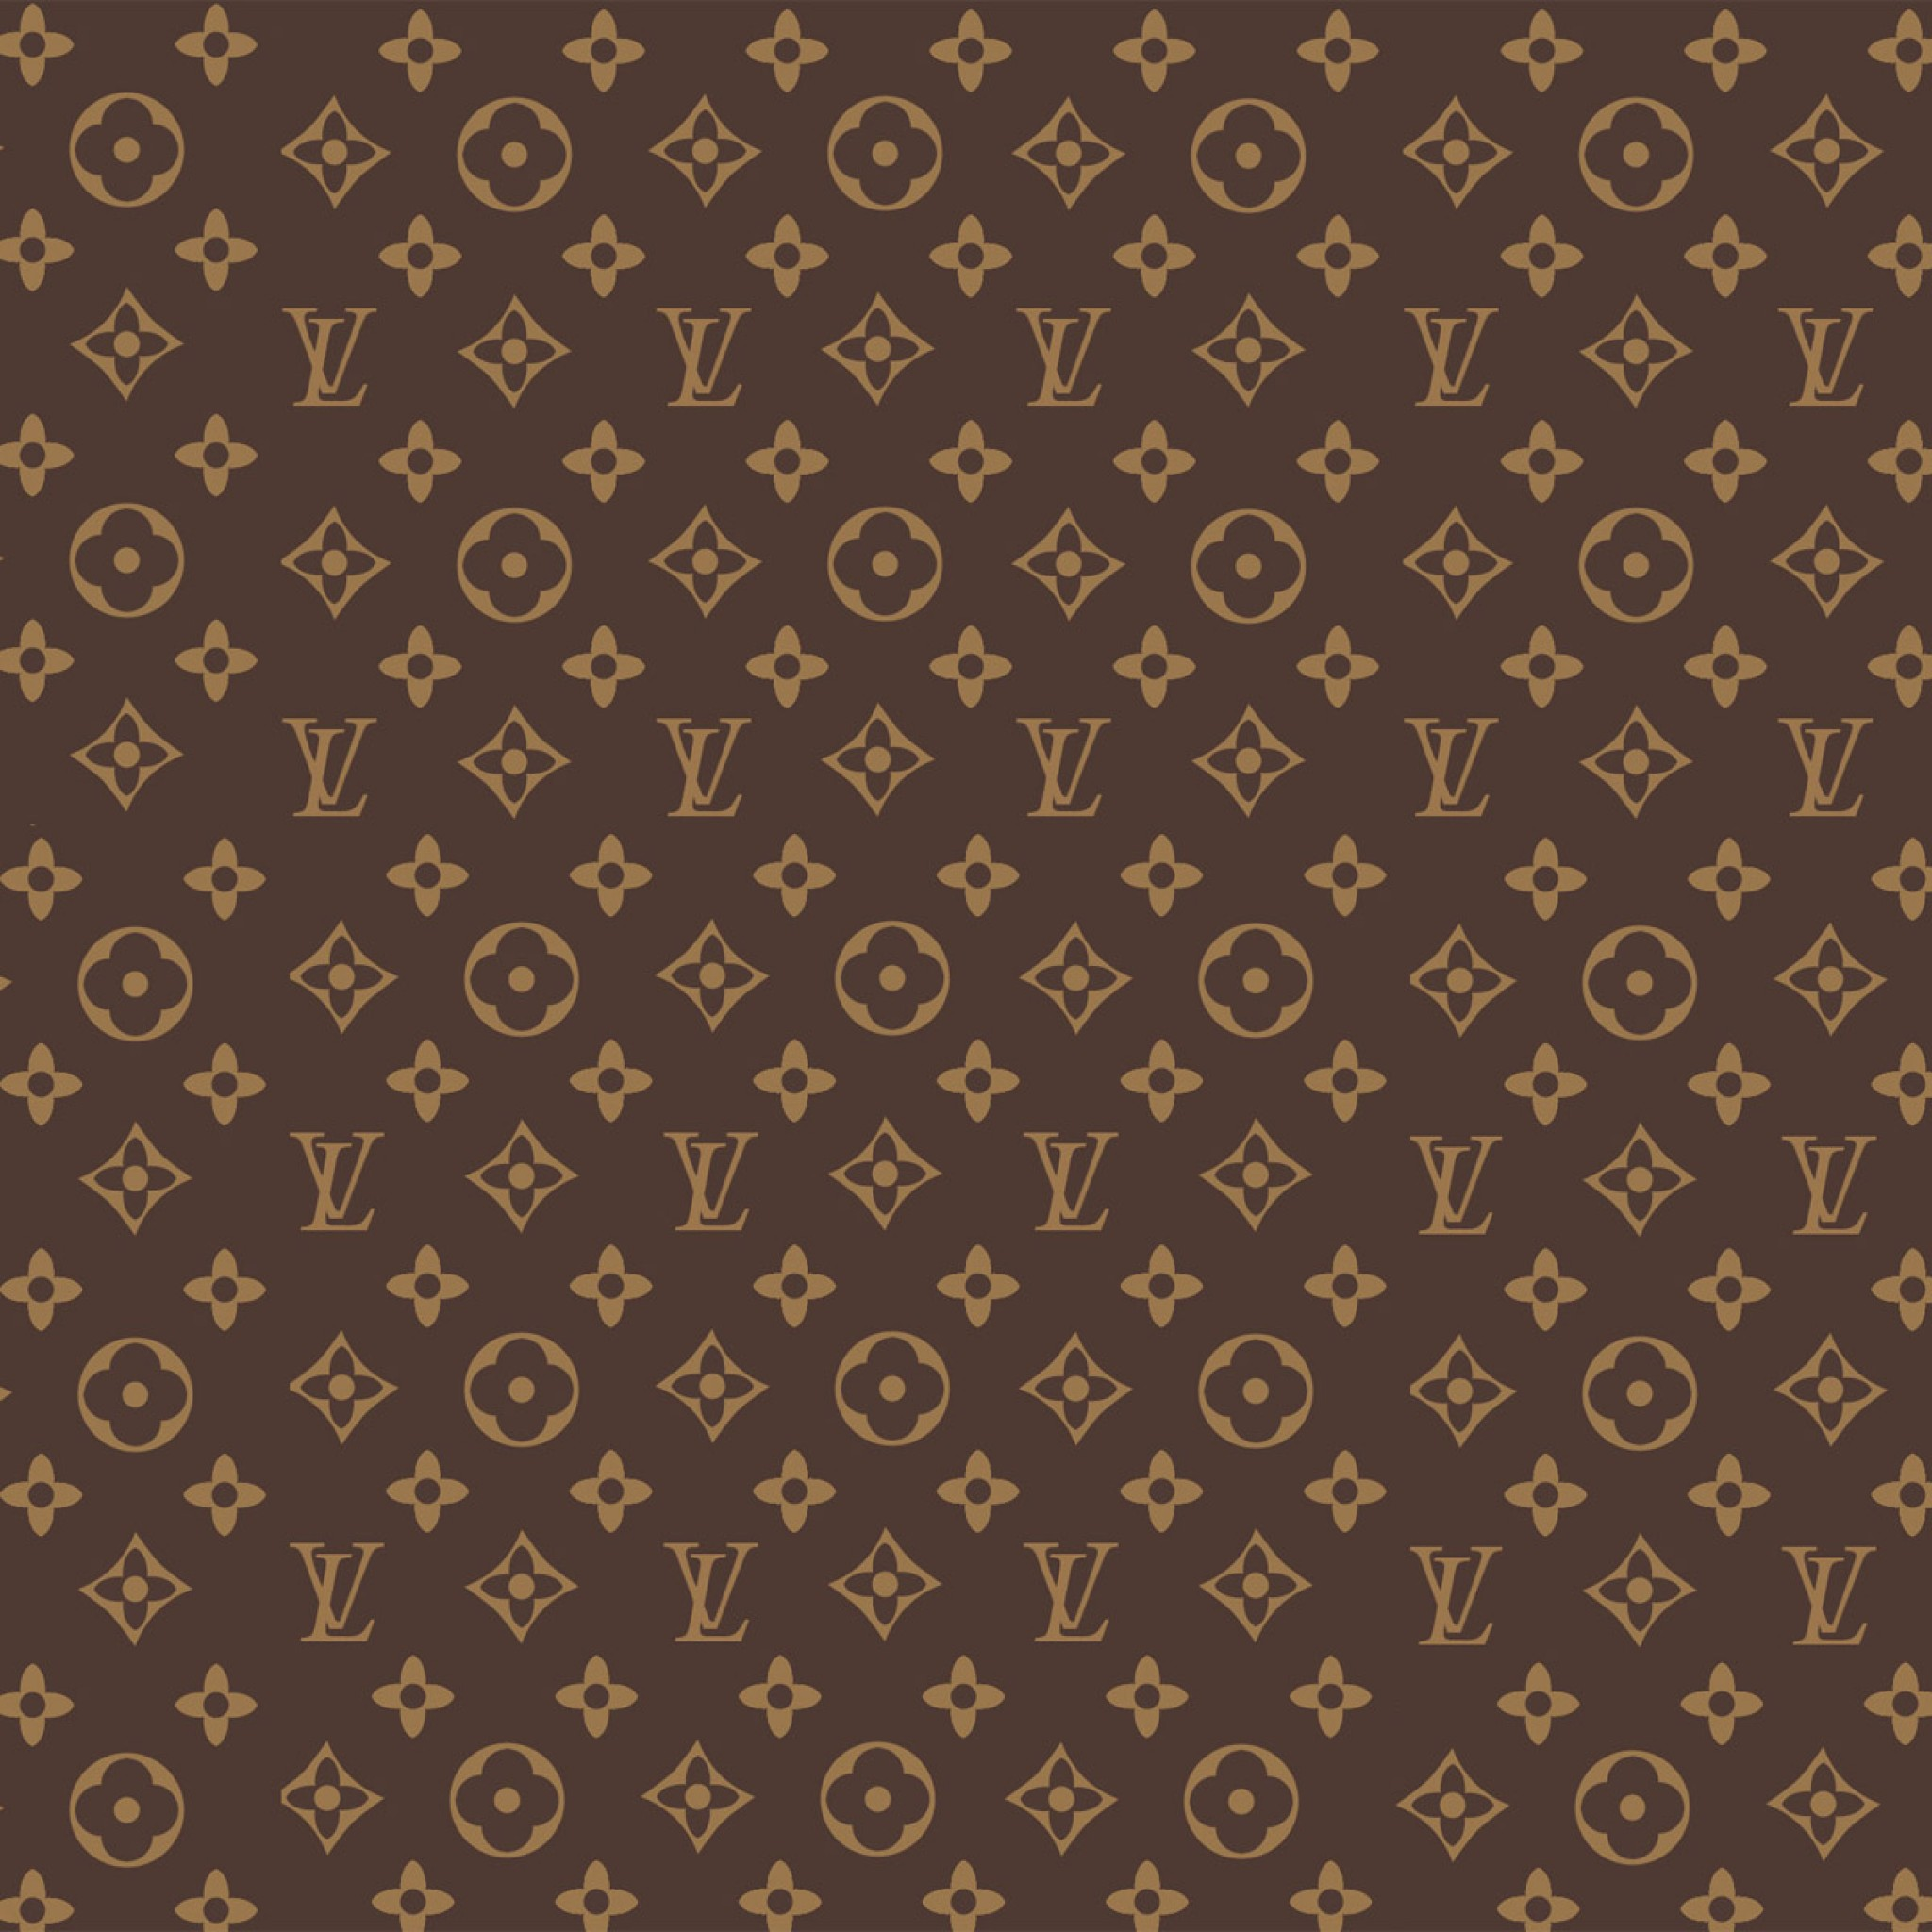 Download Lv Wallpaper Download Gallery